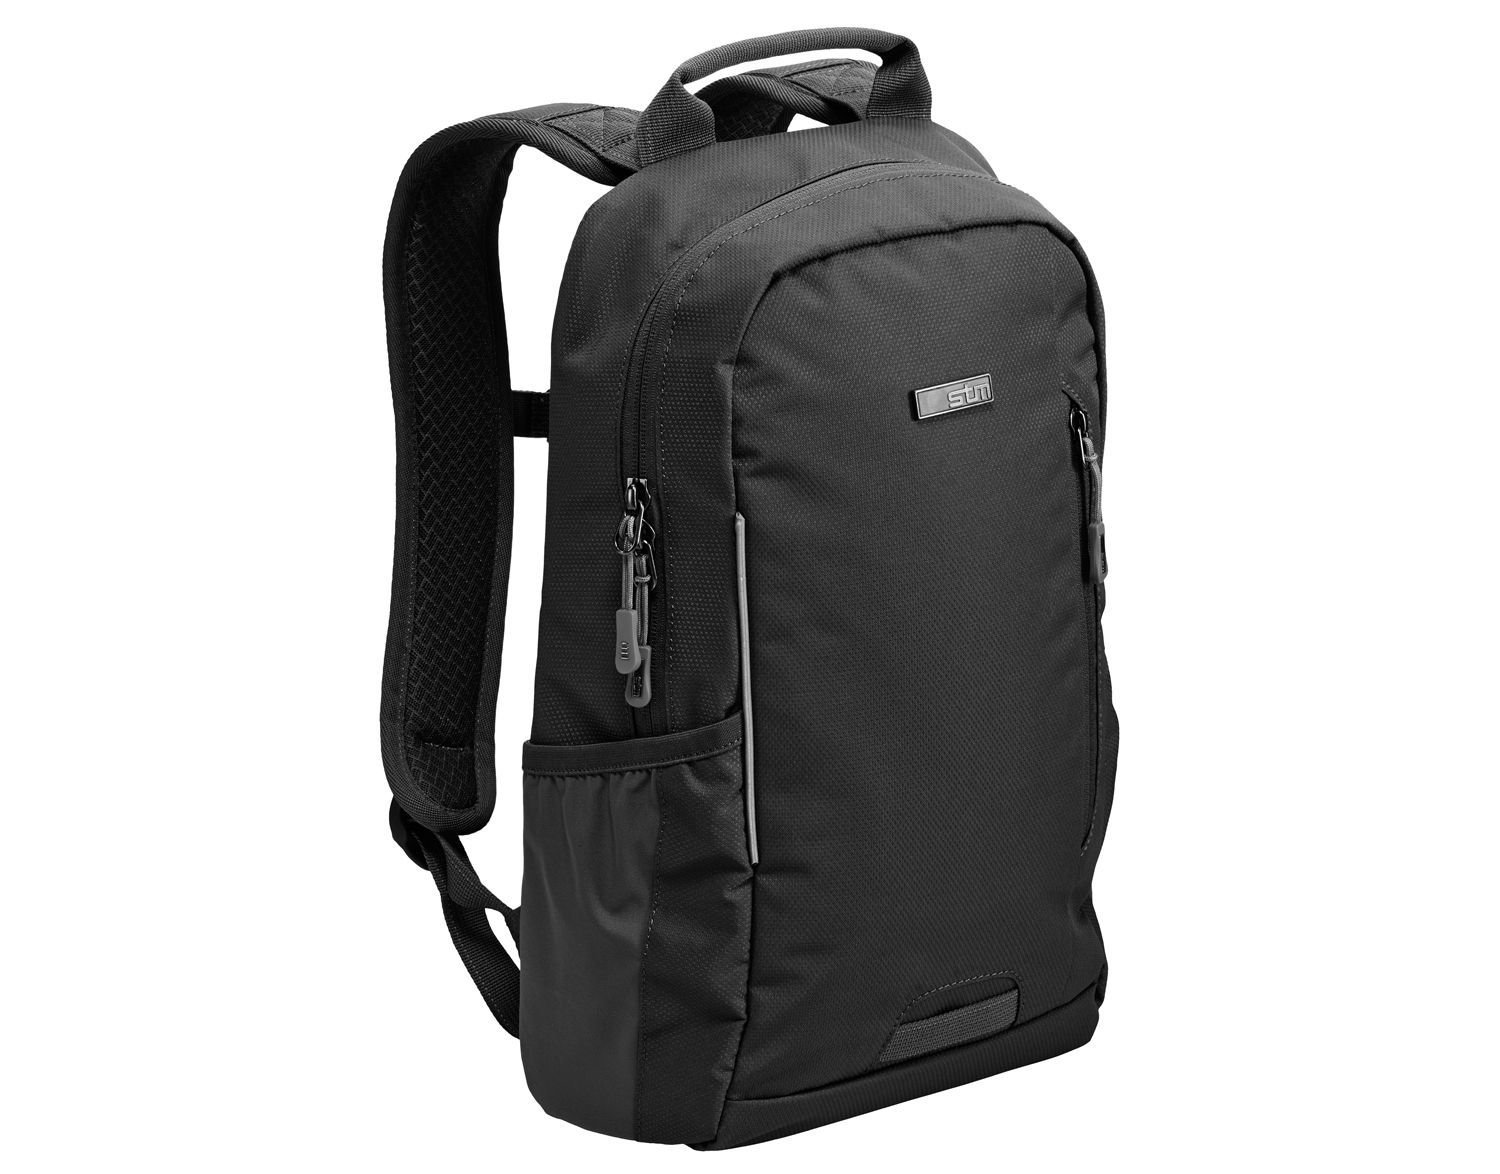 Aero Small Laptop Backpack Stm 111 036m 01